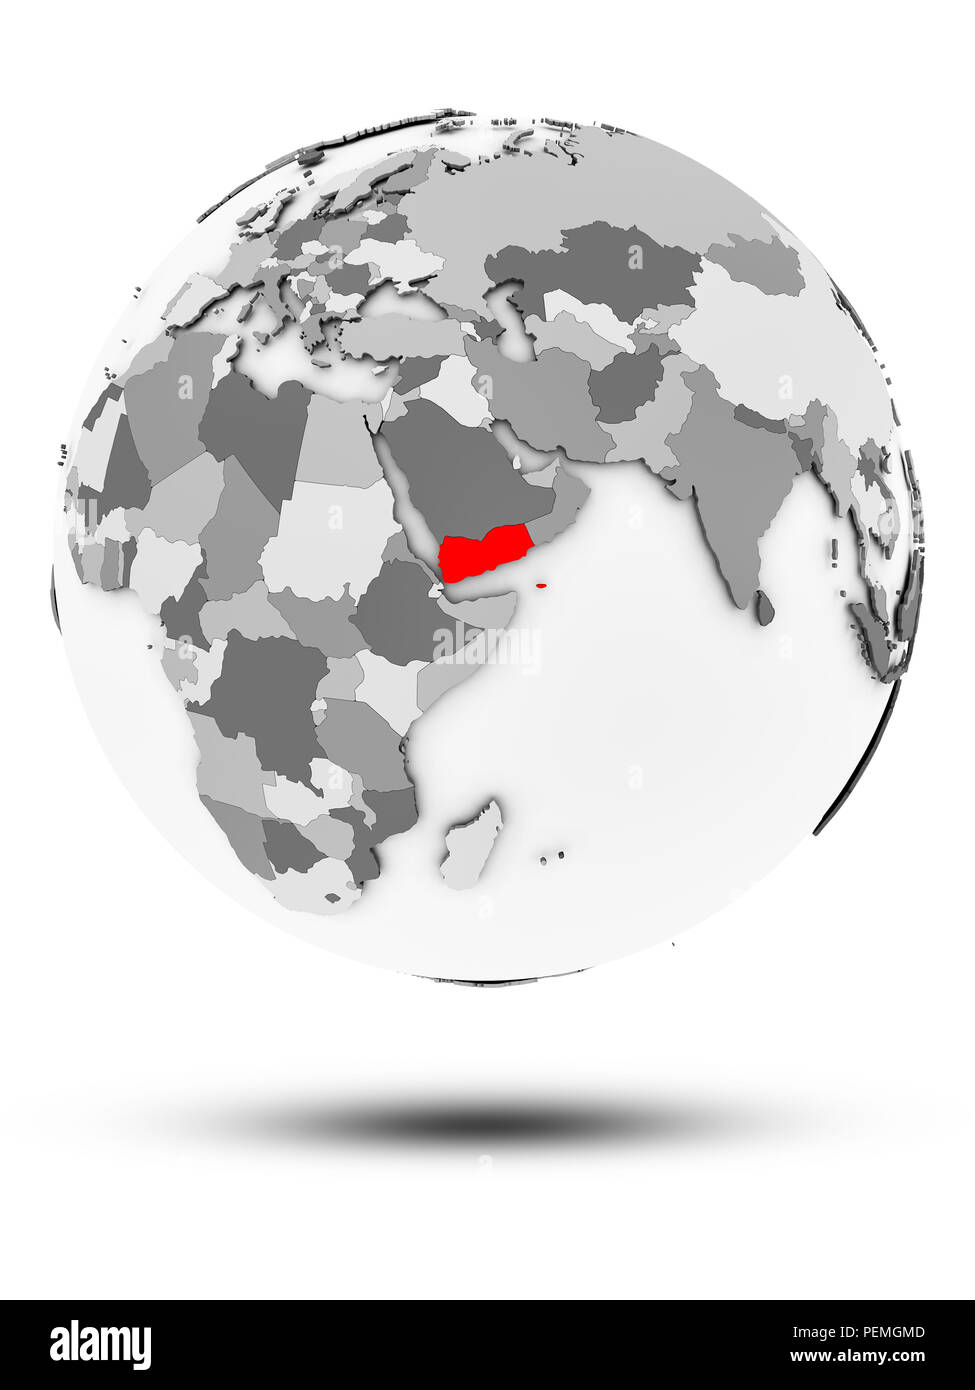 Yemen on simple gray globe with shadow isolated on white background. 3D illustration. Stock Photo